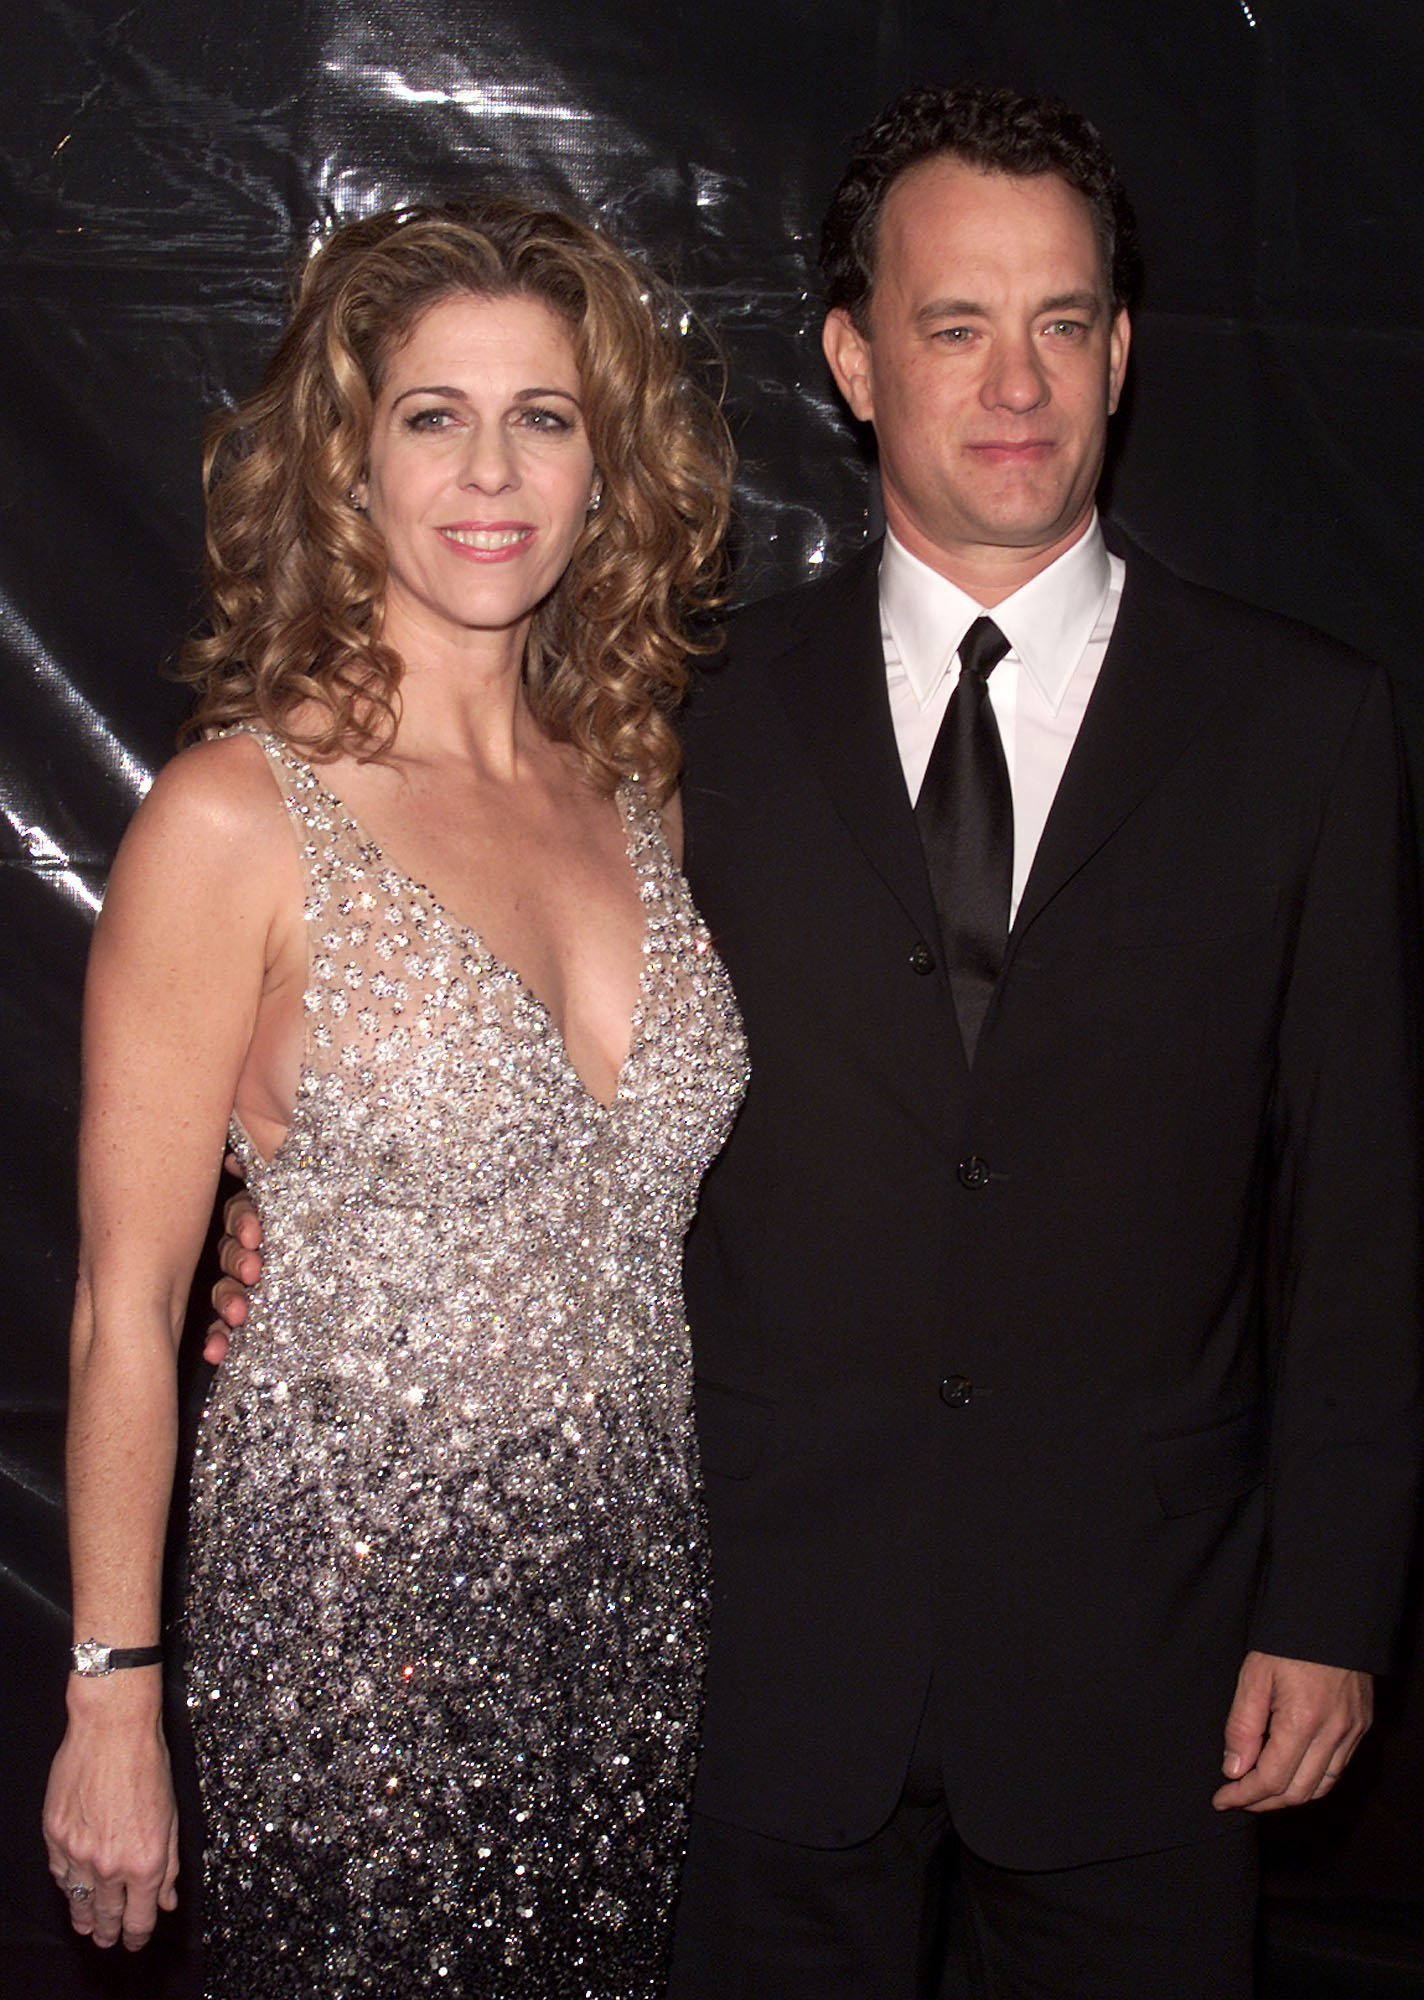 Tom Hanks and Rita Wilson attend the Valentino 40th Anniversary in Los Angeles on November 17, 2000 | Photo: Getty Images